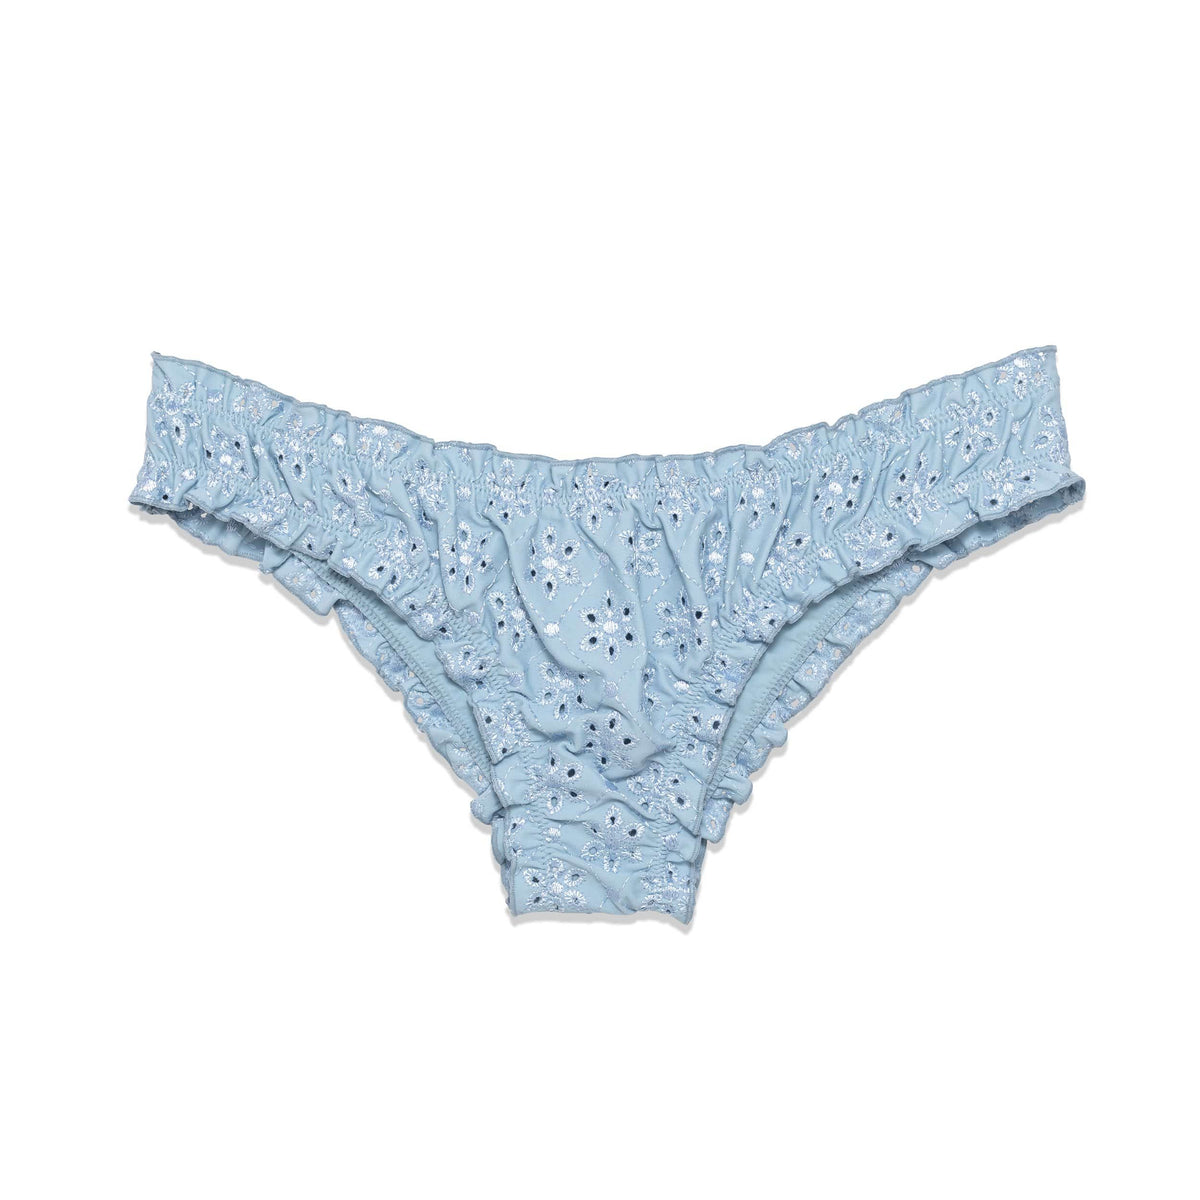 The Chloe Bottom in Ash Eyelet